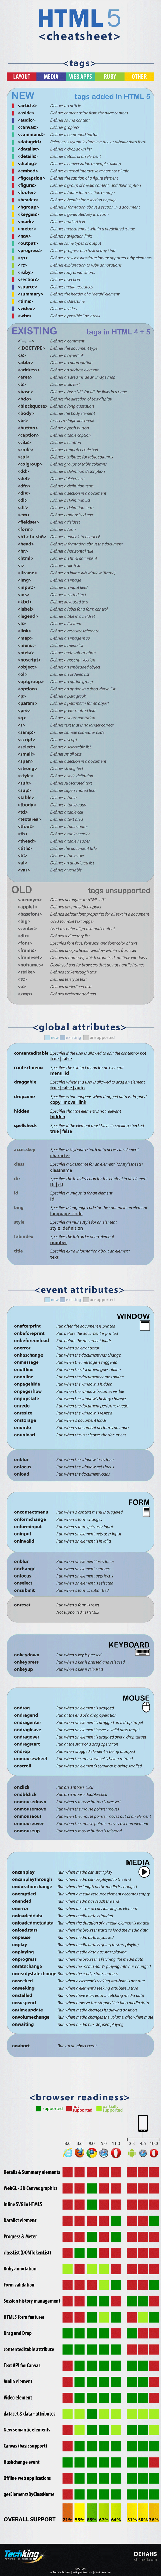 20 Best HTML & CSS Cheat Sheets to Up Your Coding Game   ShareThis